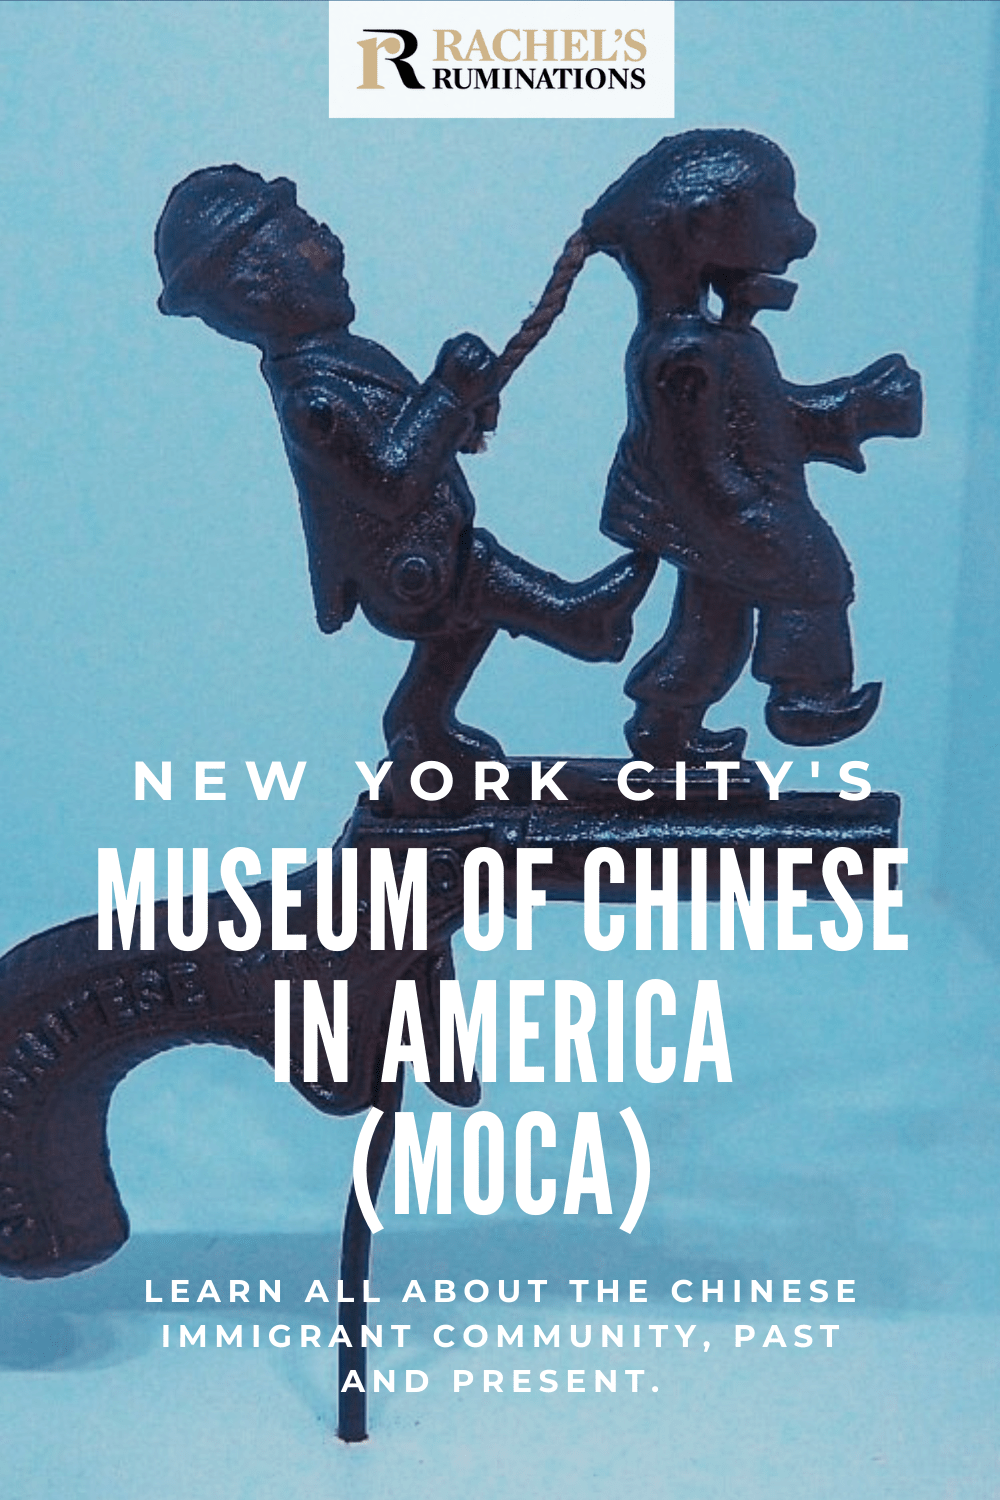 MOCA New York City (Museum of Chinese in America) shows the history and culture of this community, and addresses the racism and stereotyping in the history. #MOCA #ChineseAmerican #immigrationhistory via @rachelsruminations